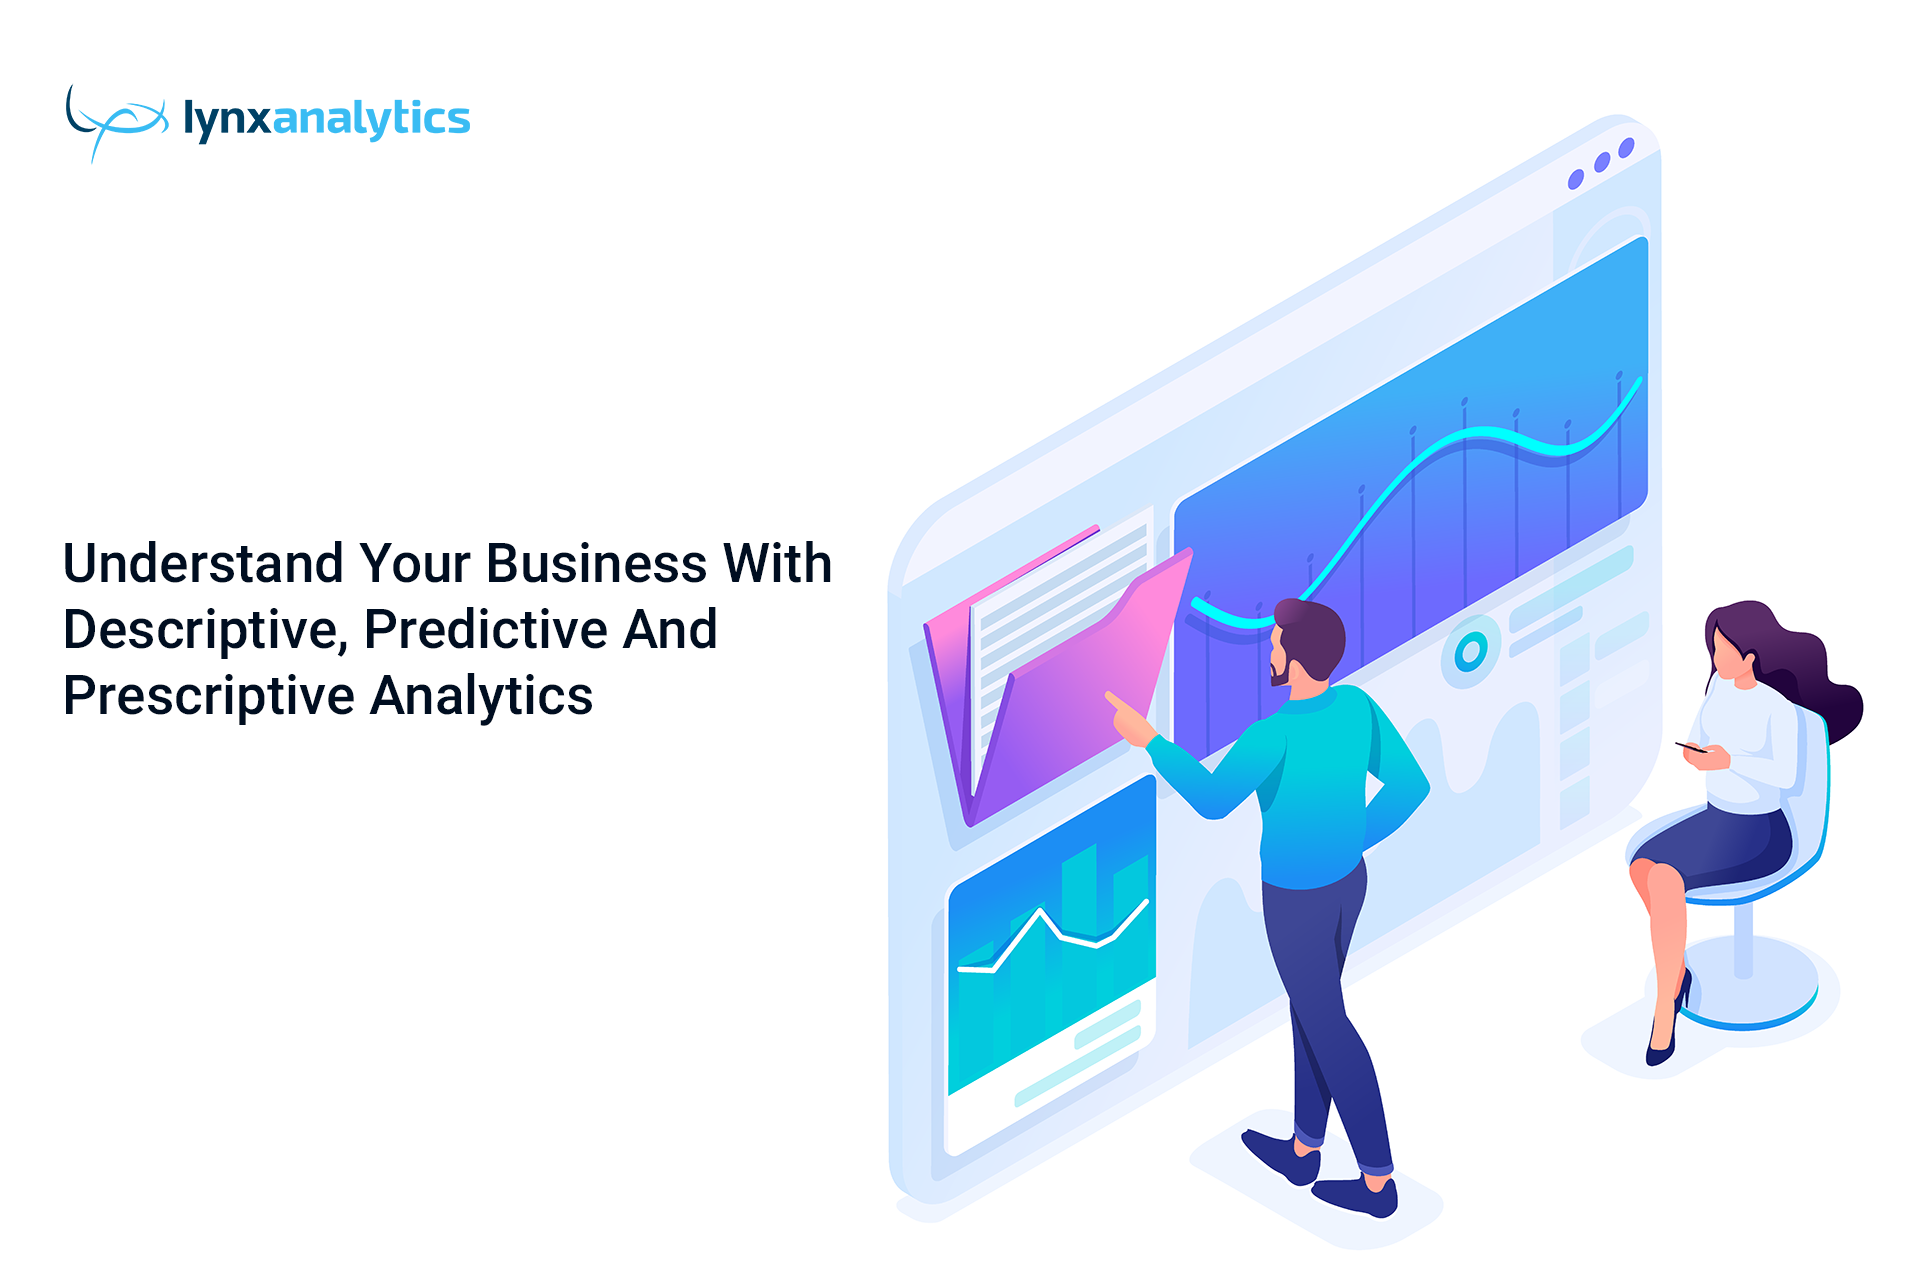 Understanding Your Business With Descriptive, Predictive and Prescriptive Analytics